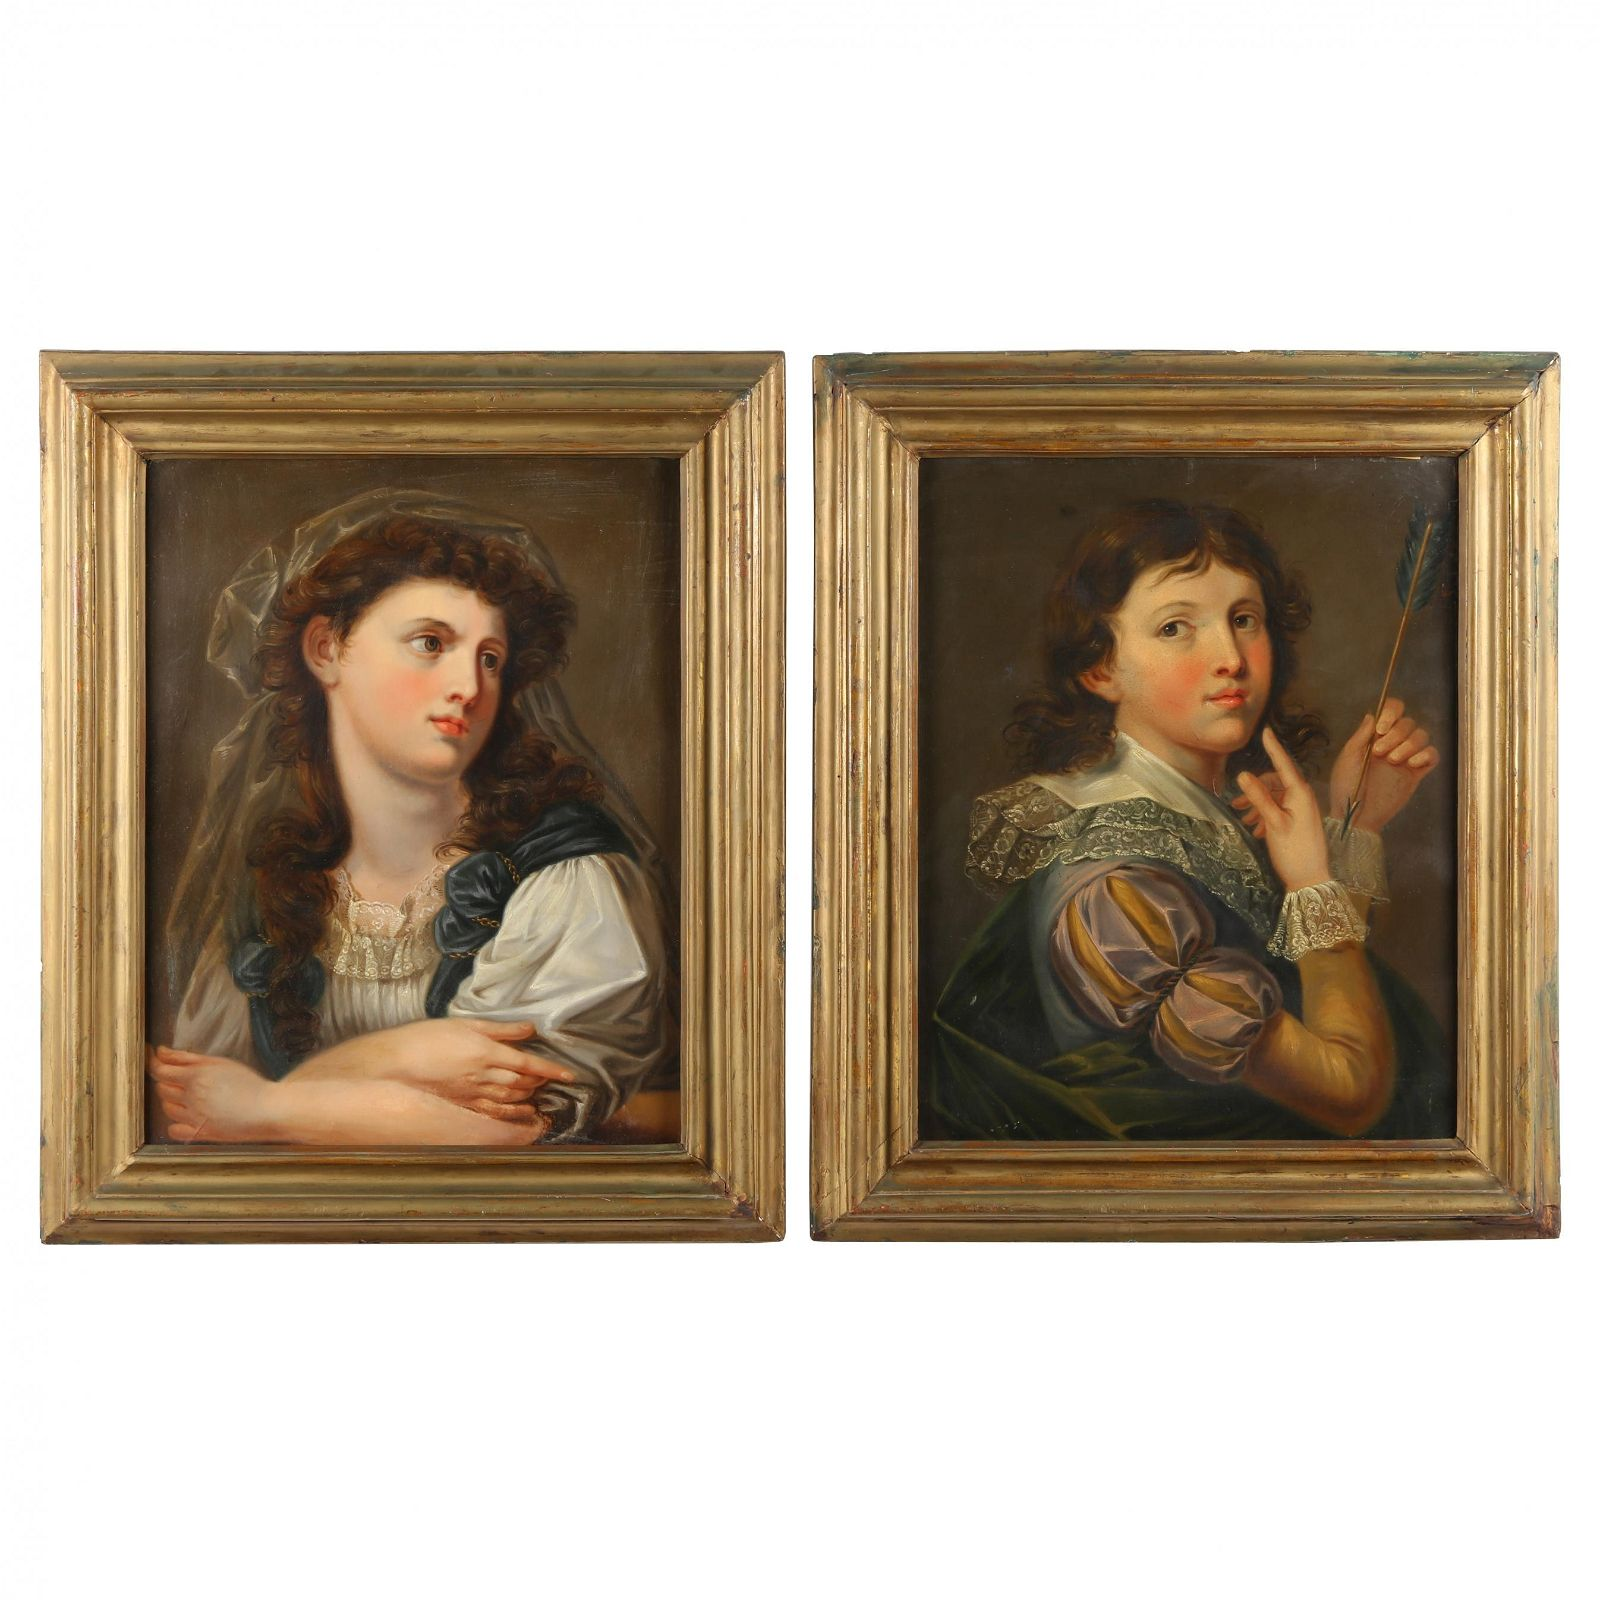 French School (19th century), A Pair of Portraits